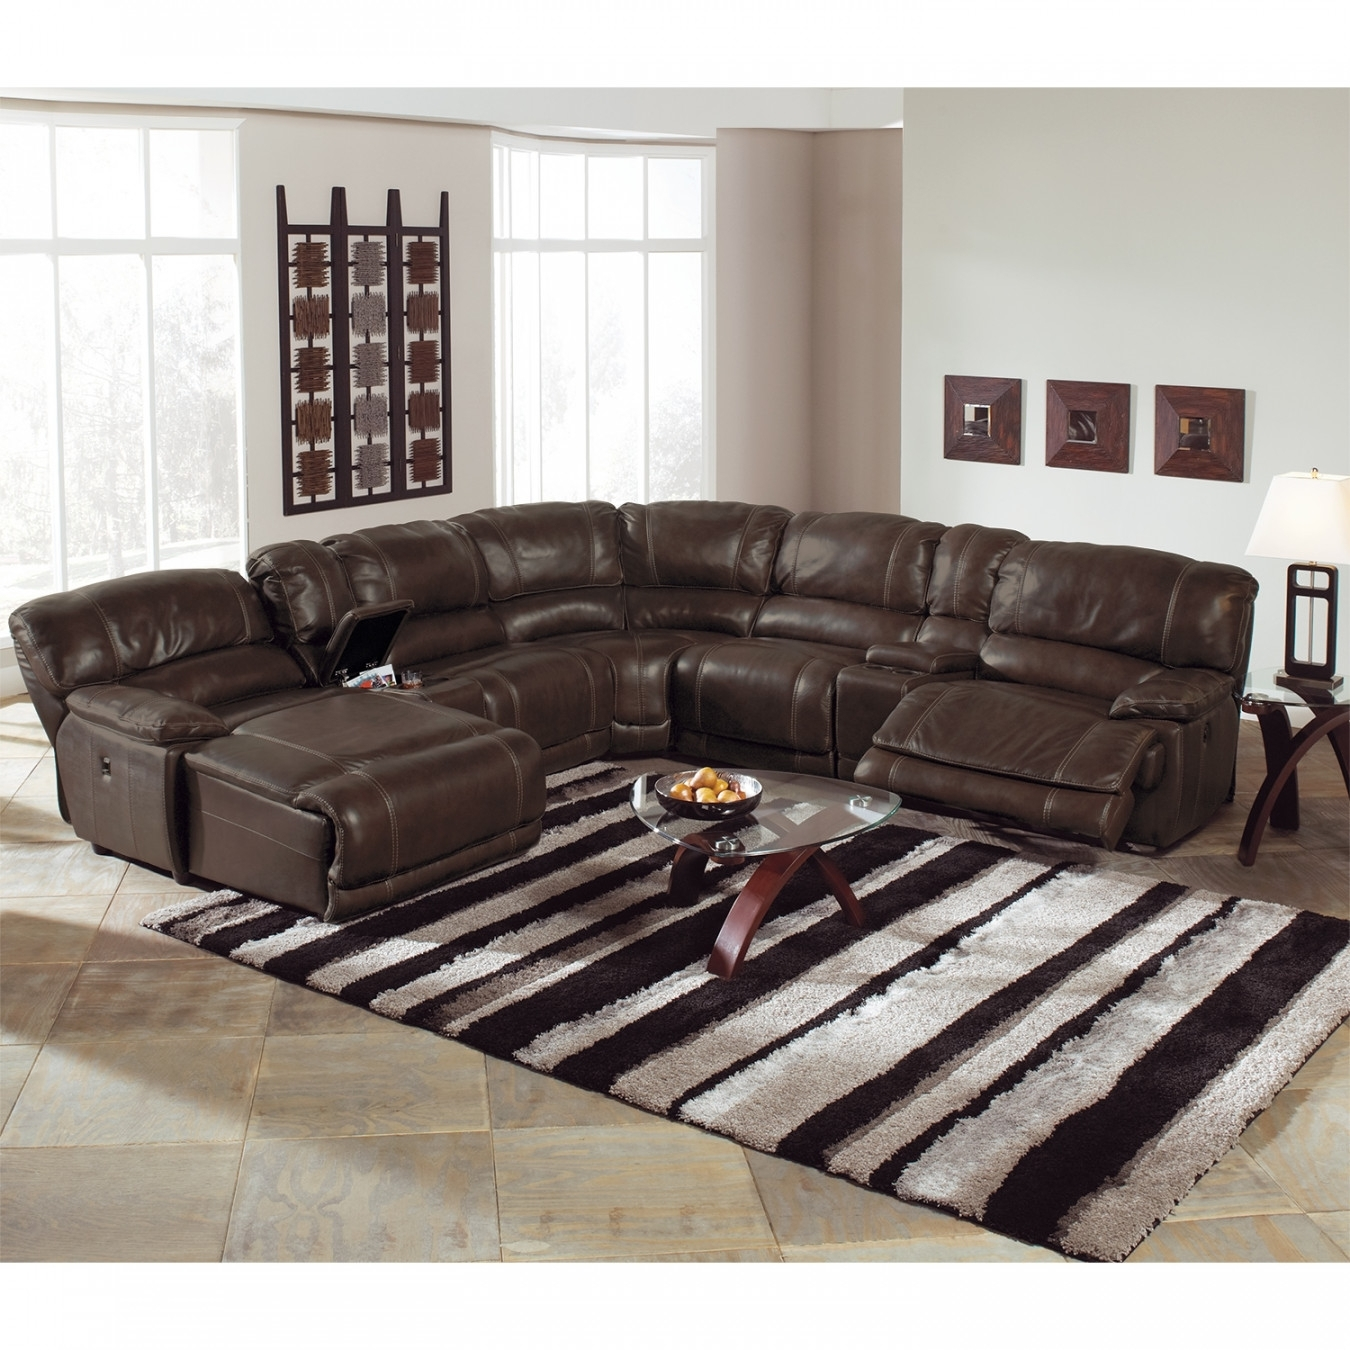 Leather Sectional Sofa With Power Recliner 94 With Leather | Home throughout Sectional Sofas With Power Recliners (Image 4 of 10)